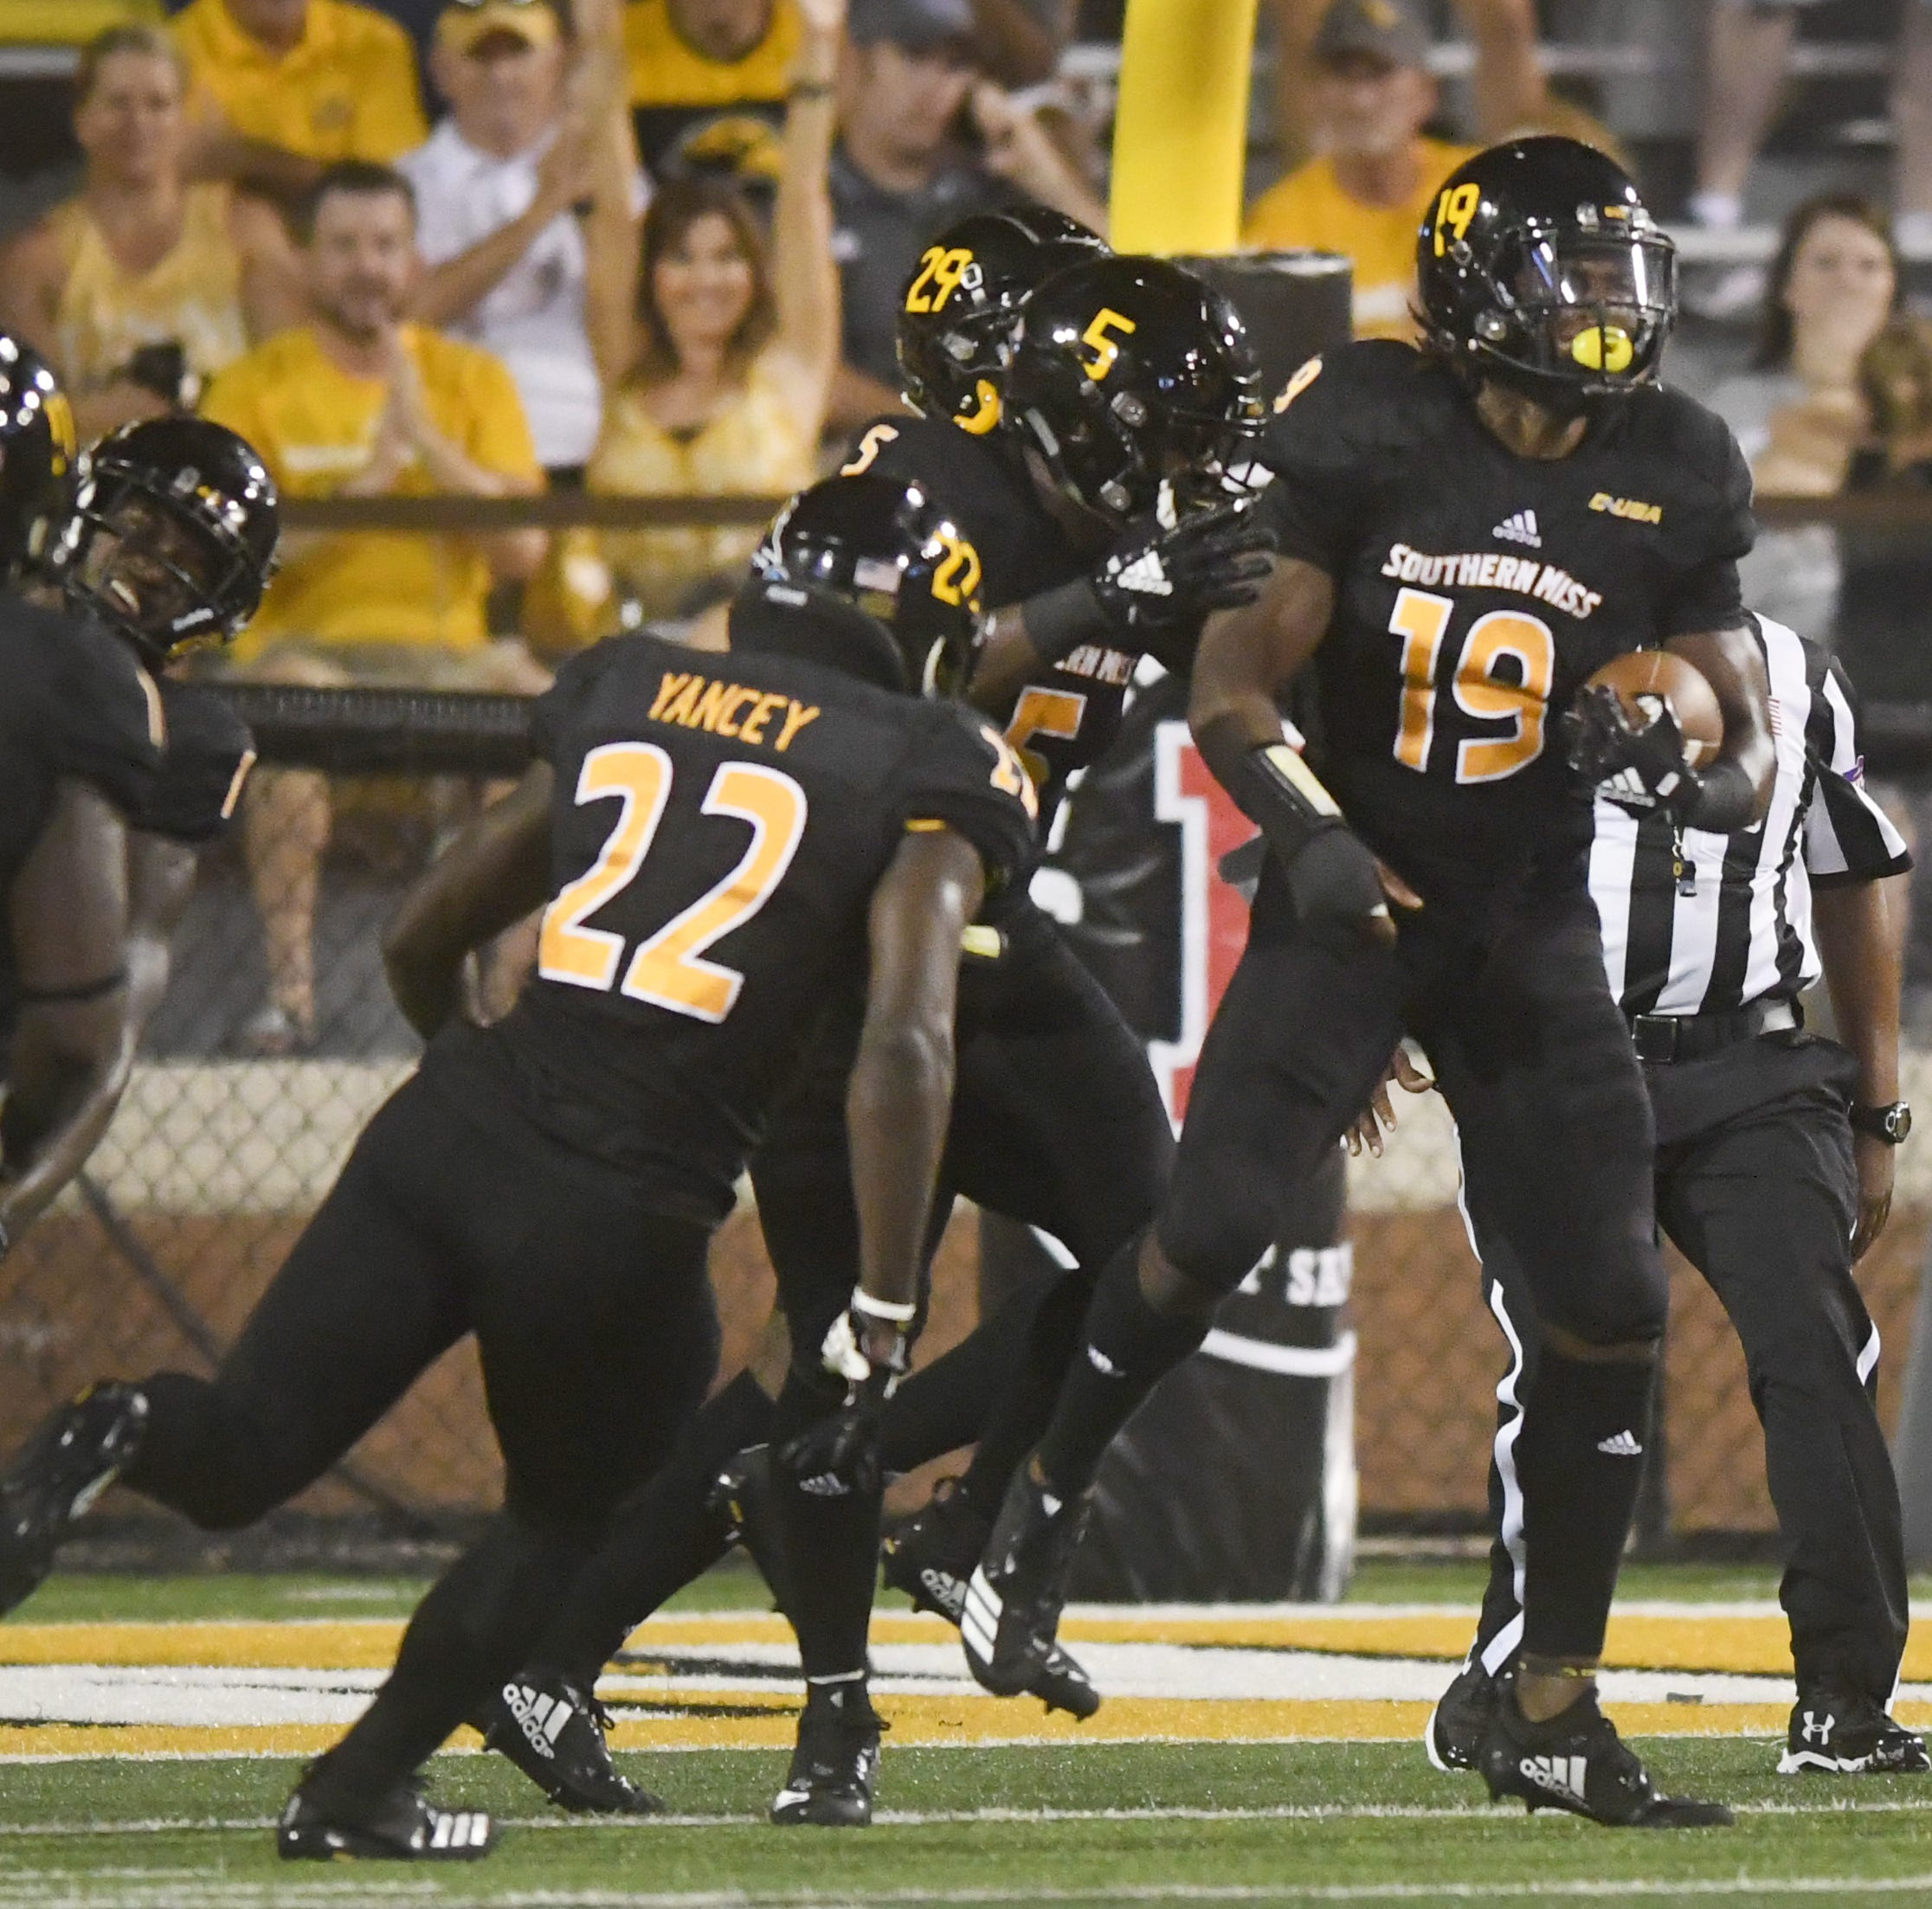 What's next? Looking ahead at what Southern Miss' game cancellation means for rest of 2018